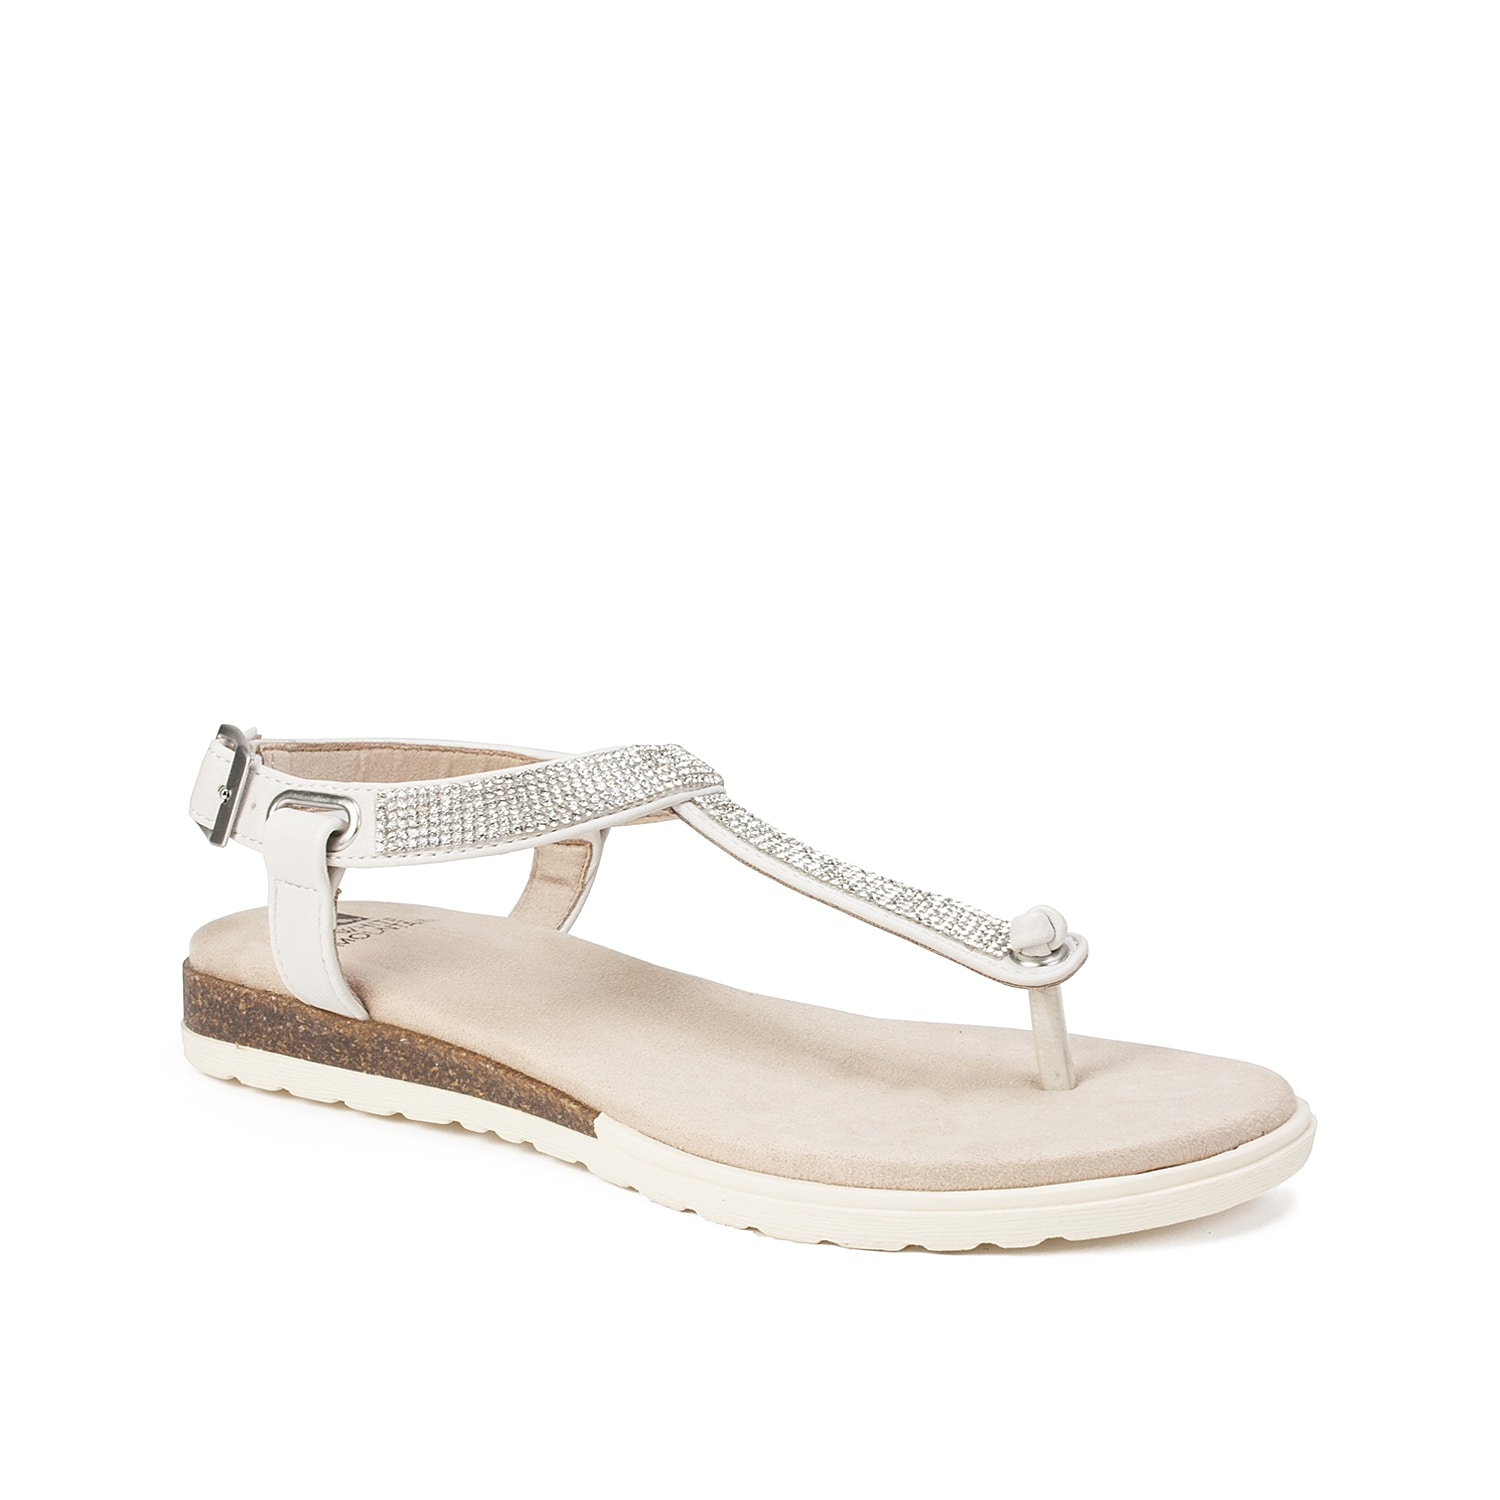 The Parana sandal from White Mountain are the perfect fit for your rotating wardrobe. This casual pair is fashioned with rhinestone embellishments and a cushioned footbed for all the style and comfort you need.